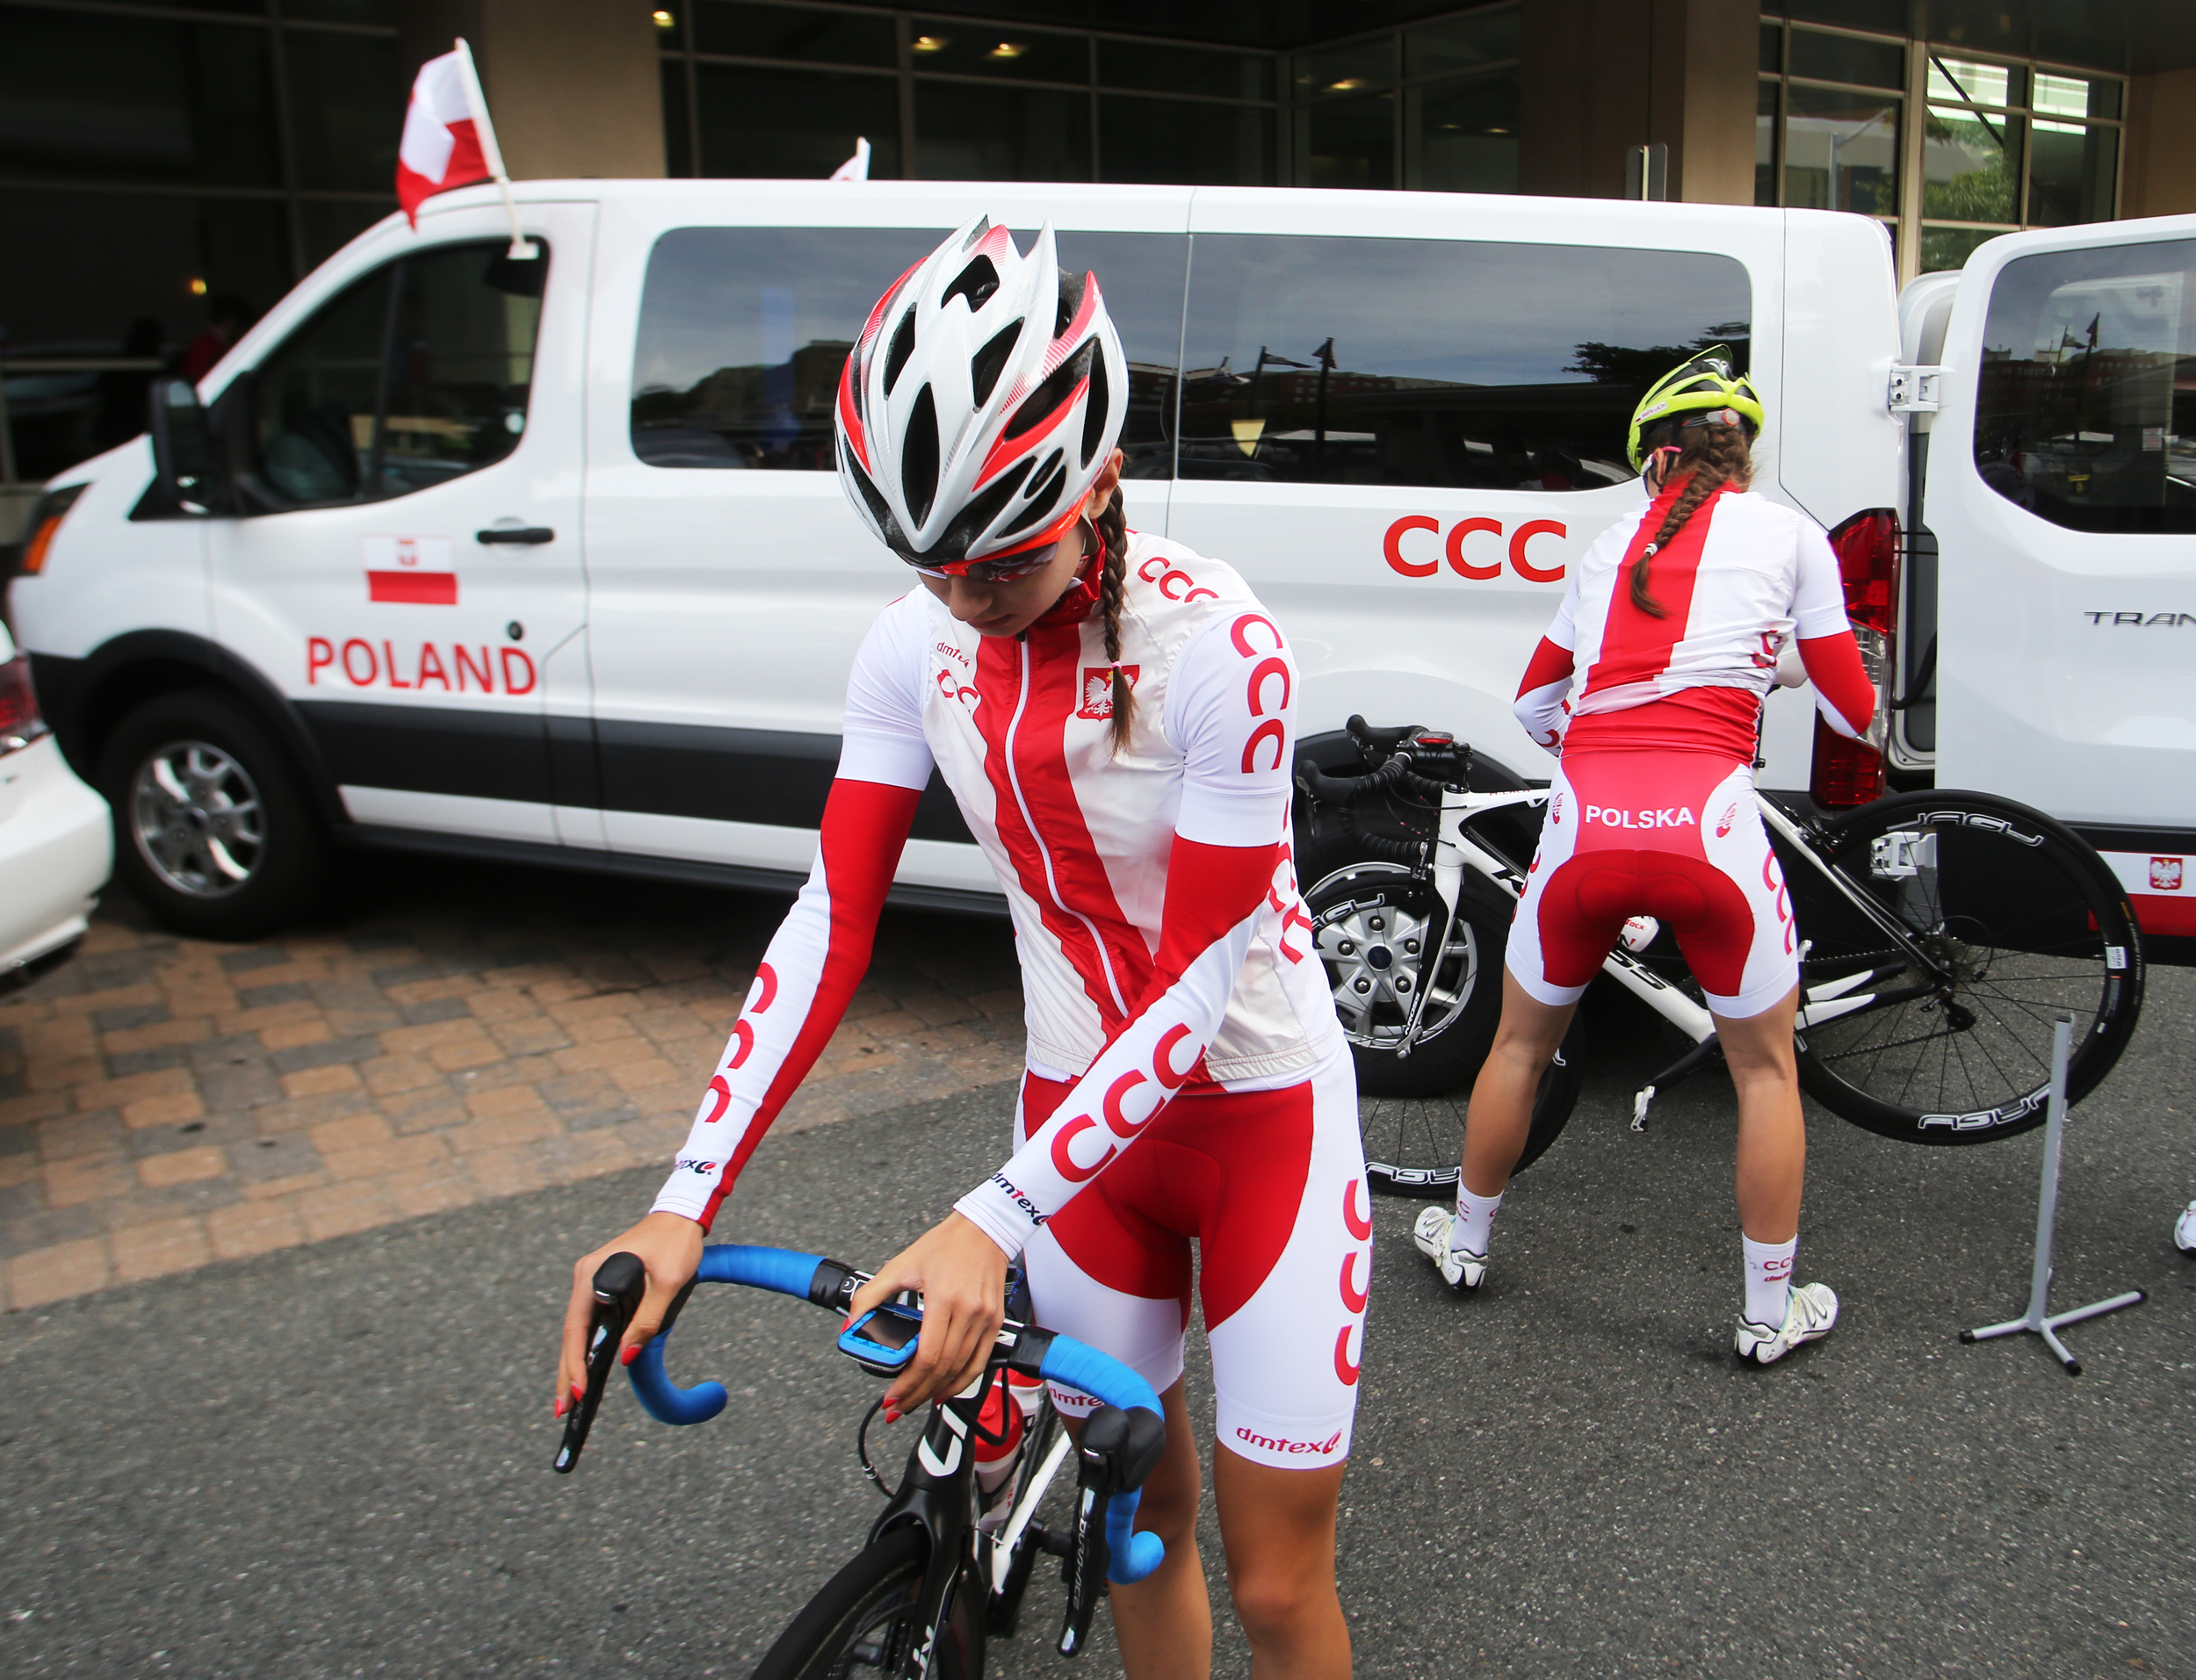 Members of the Polish cycling team make last minute adjustments before heading out for the Road Circuit Training portion of the UCI Road World Championships cycling races in Richmond, Va., Thursday, Sept. 24, 2015. (AP Photo/Jason Hirschfeld)